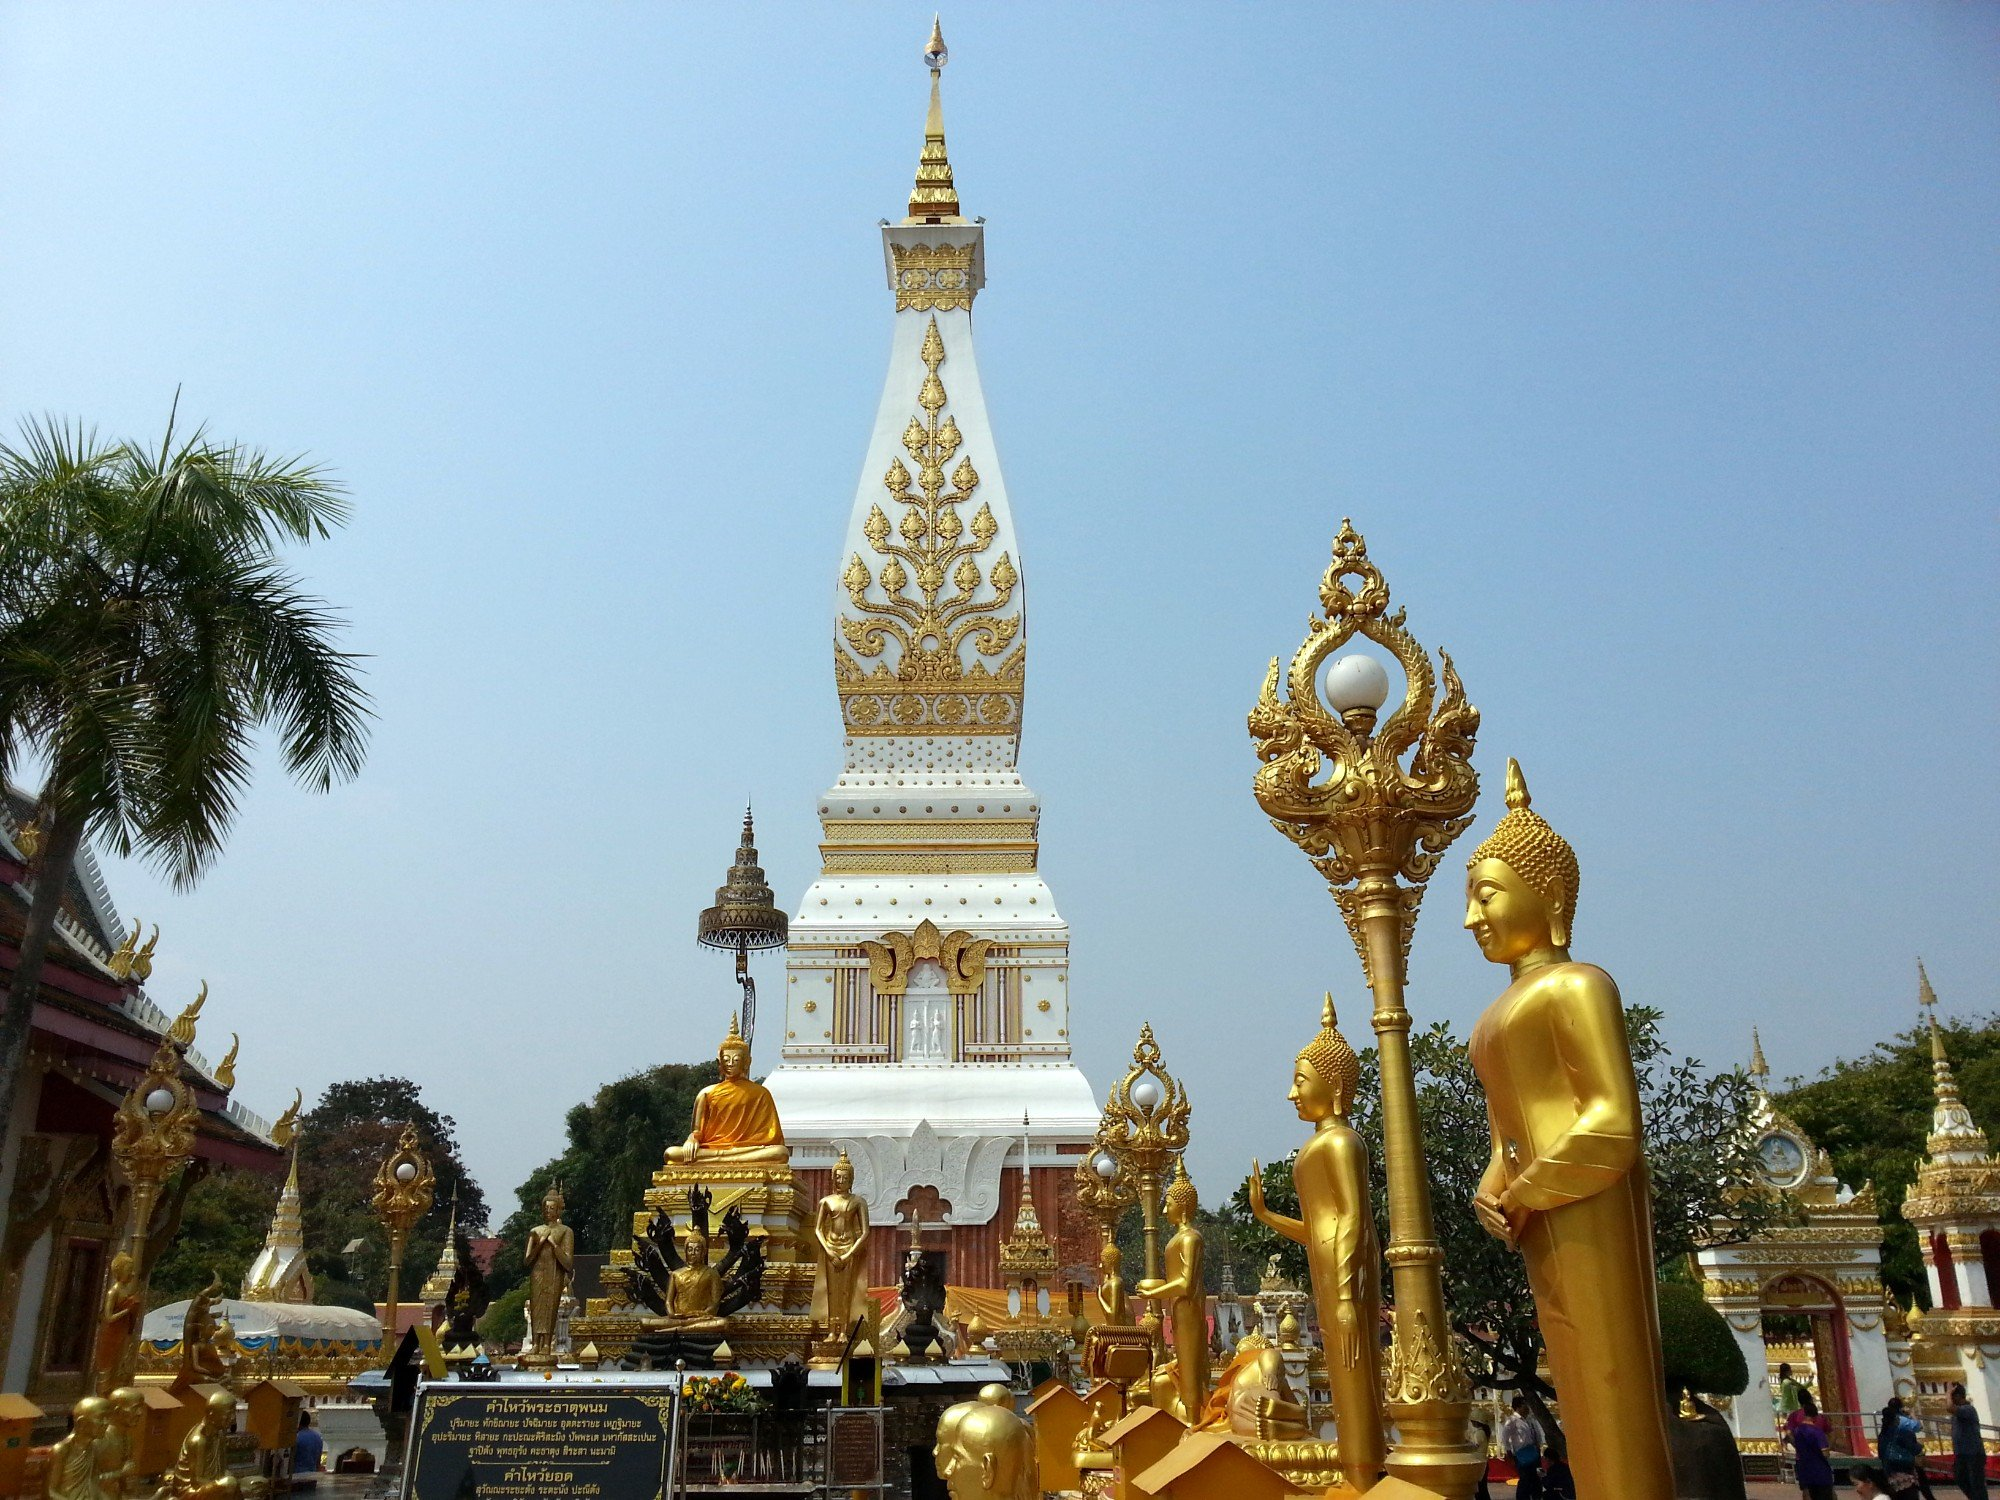 Wat Phra That Phanom in Nakhon Phanom Province